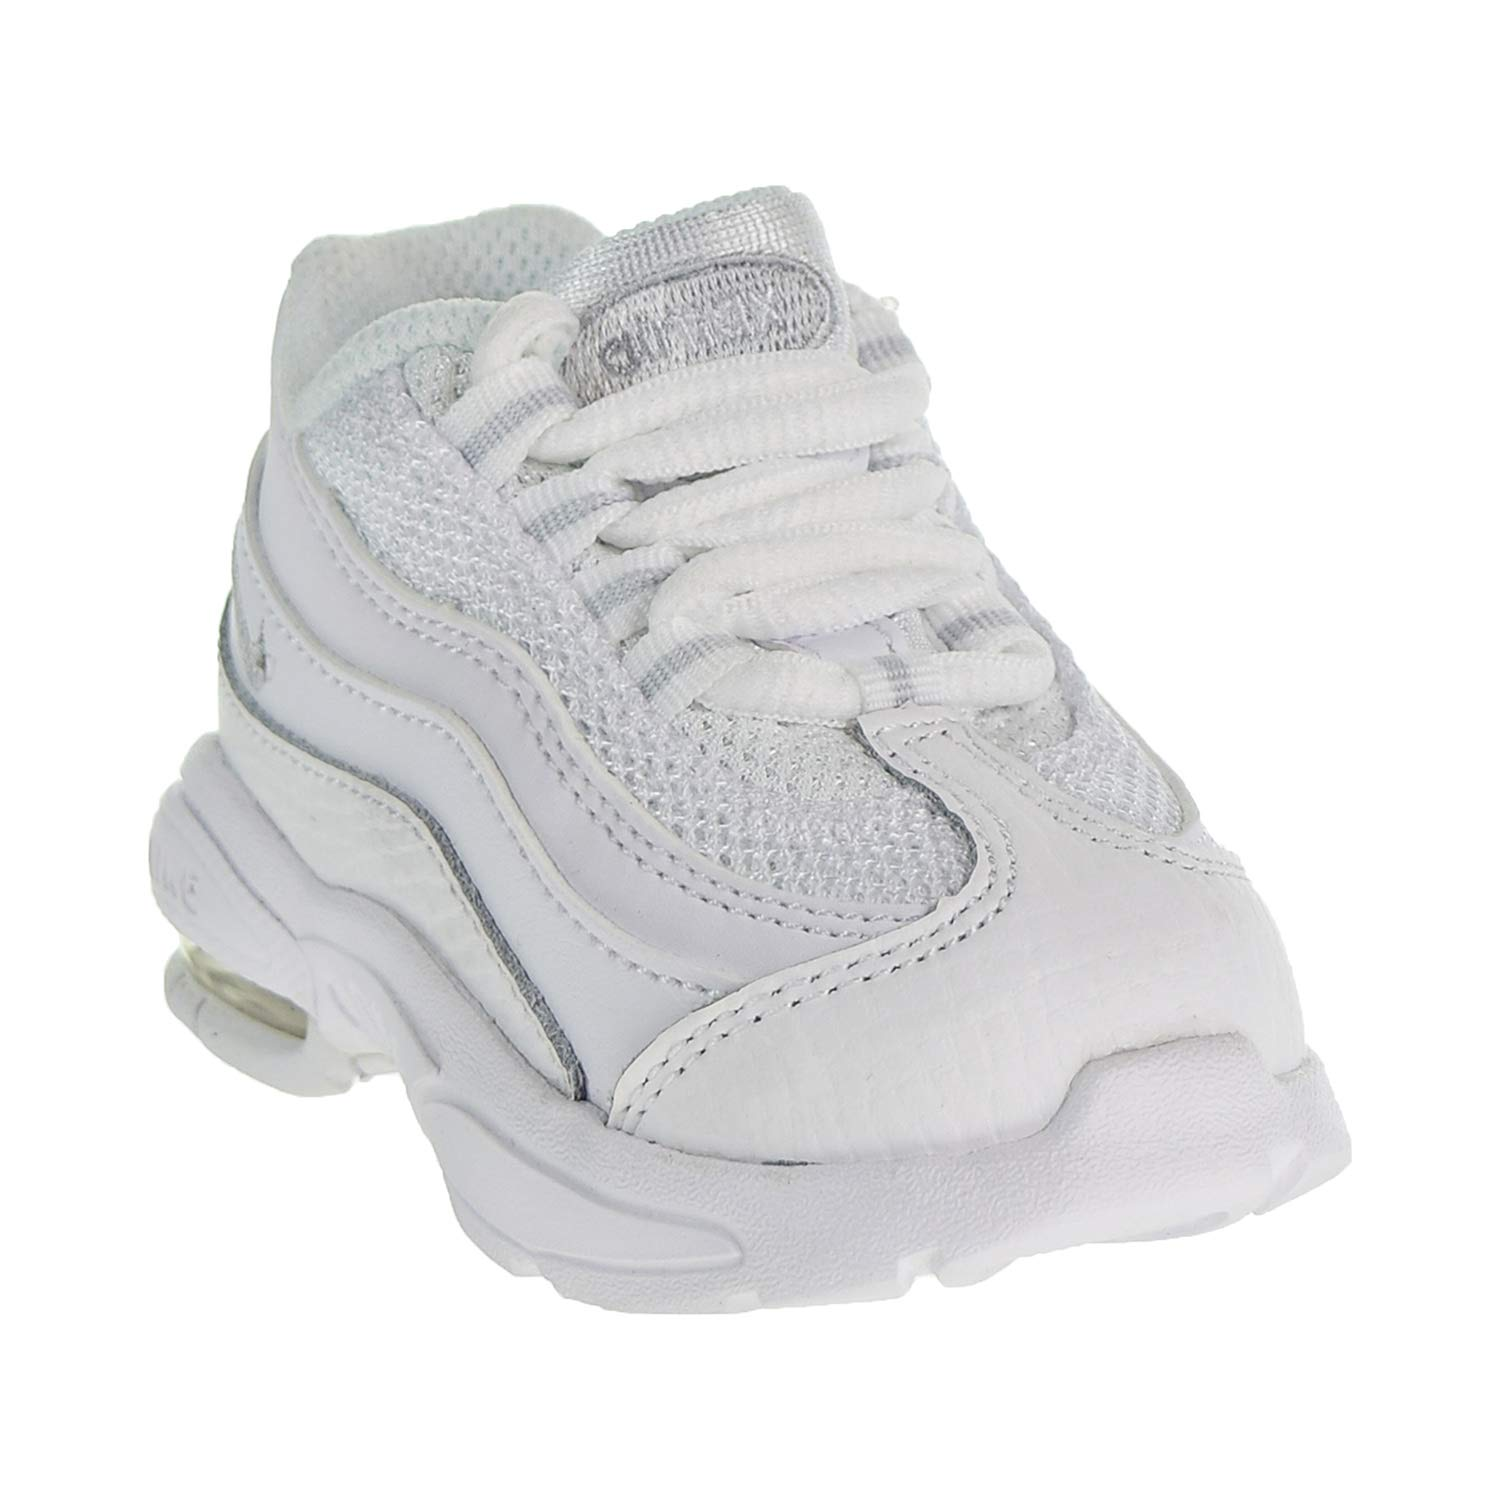 755df9d5a Amazon.com | NIKE Little Max 95 Baby Toddlers Shoes White 311525-109 (8 M  US) | Sneakers